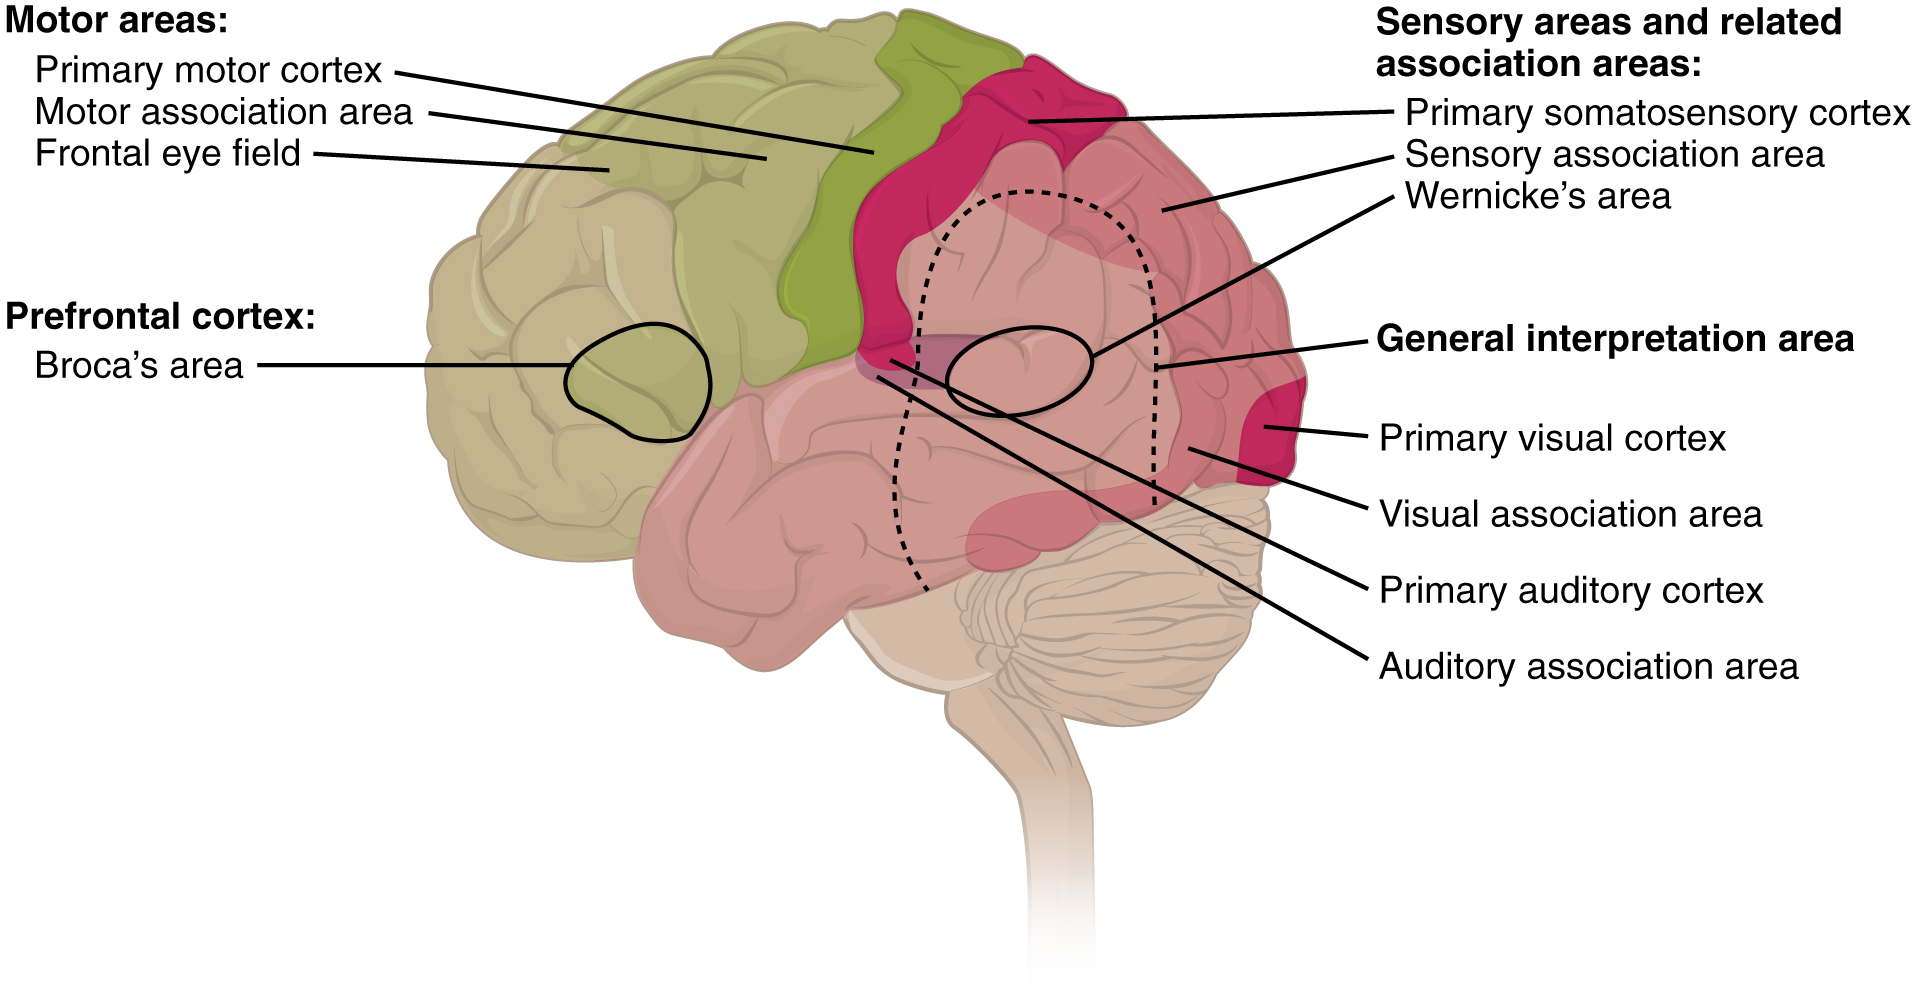 This figure shows the brain with the different regions colored differently. Text callouts from each region show the function of that particular region.